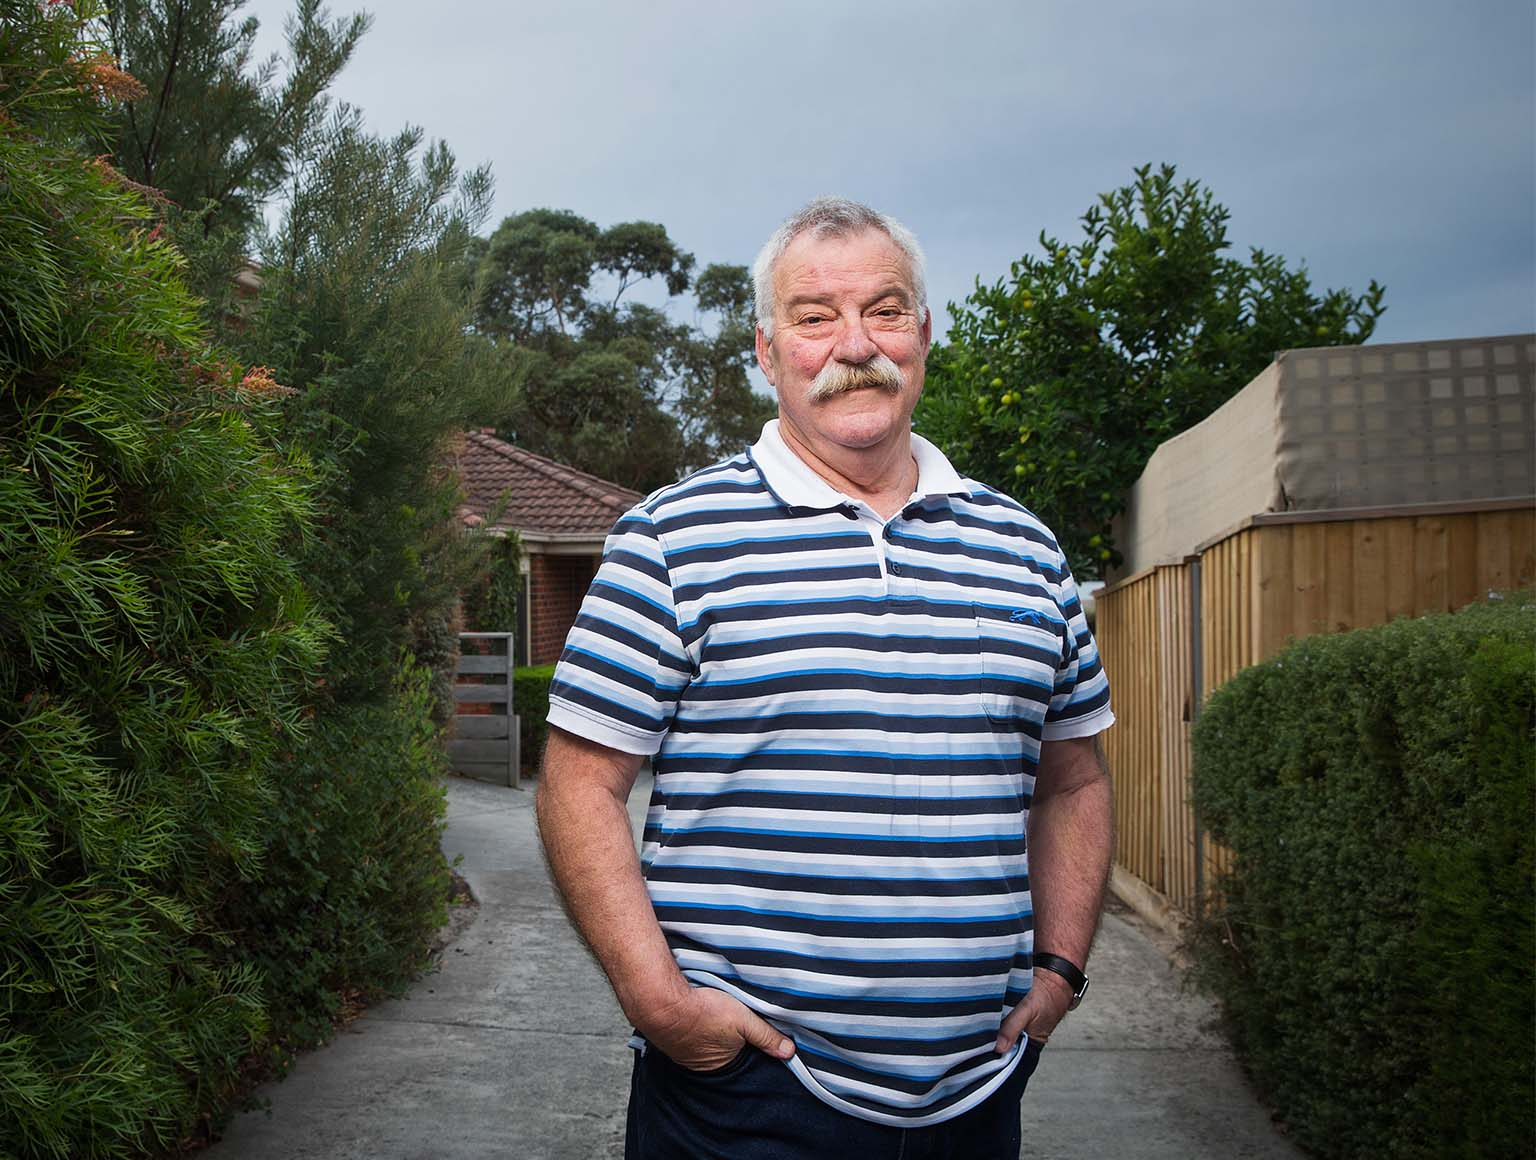 Photo of an older man with short grey hair and a grey moustache, wearing a blue and white striped polo shirt, standing in a suburban driveway, hands in pockets, smiling at the camera.